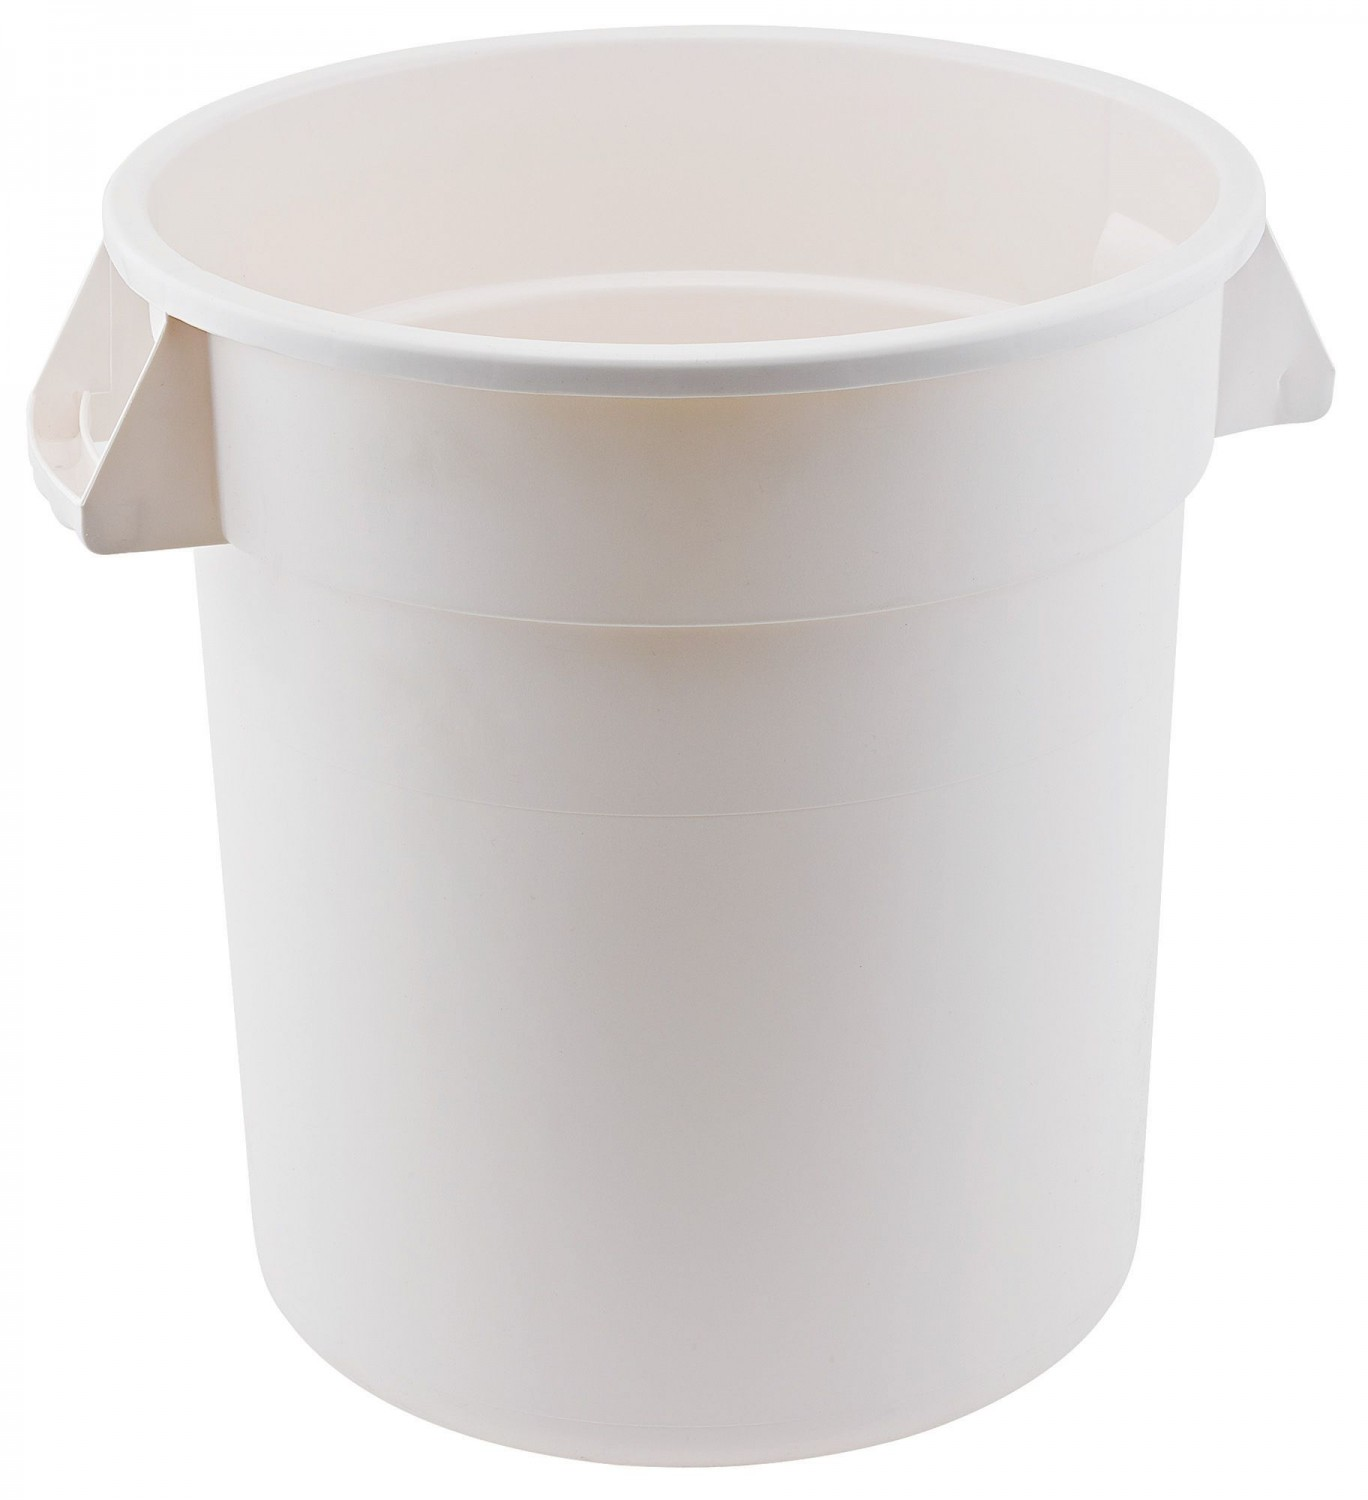 Winco FCW-32 Heavy Duty White Polypropylene Container, 32 Gallon